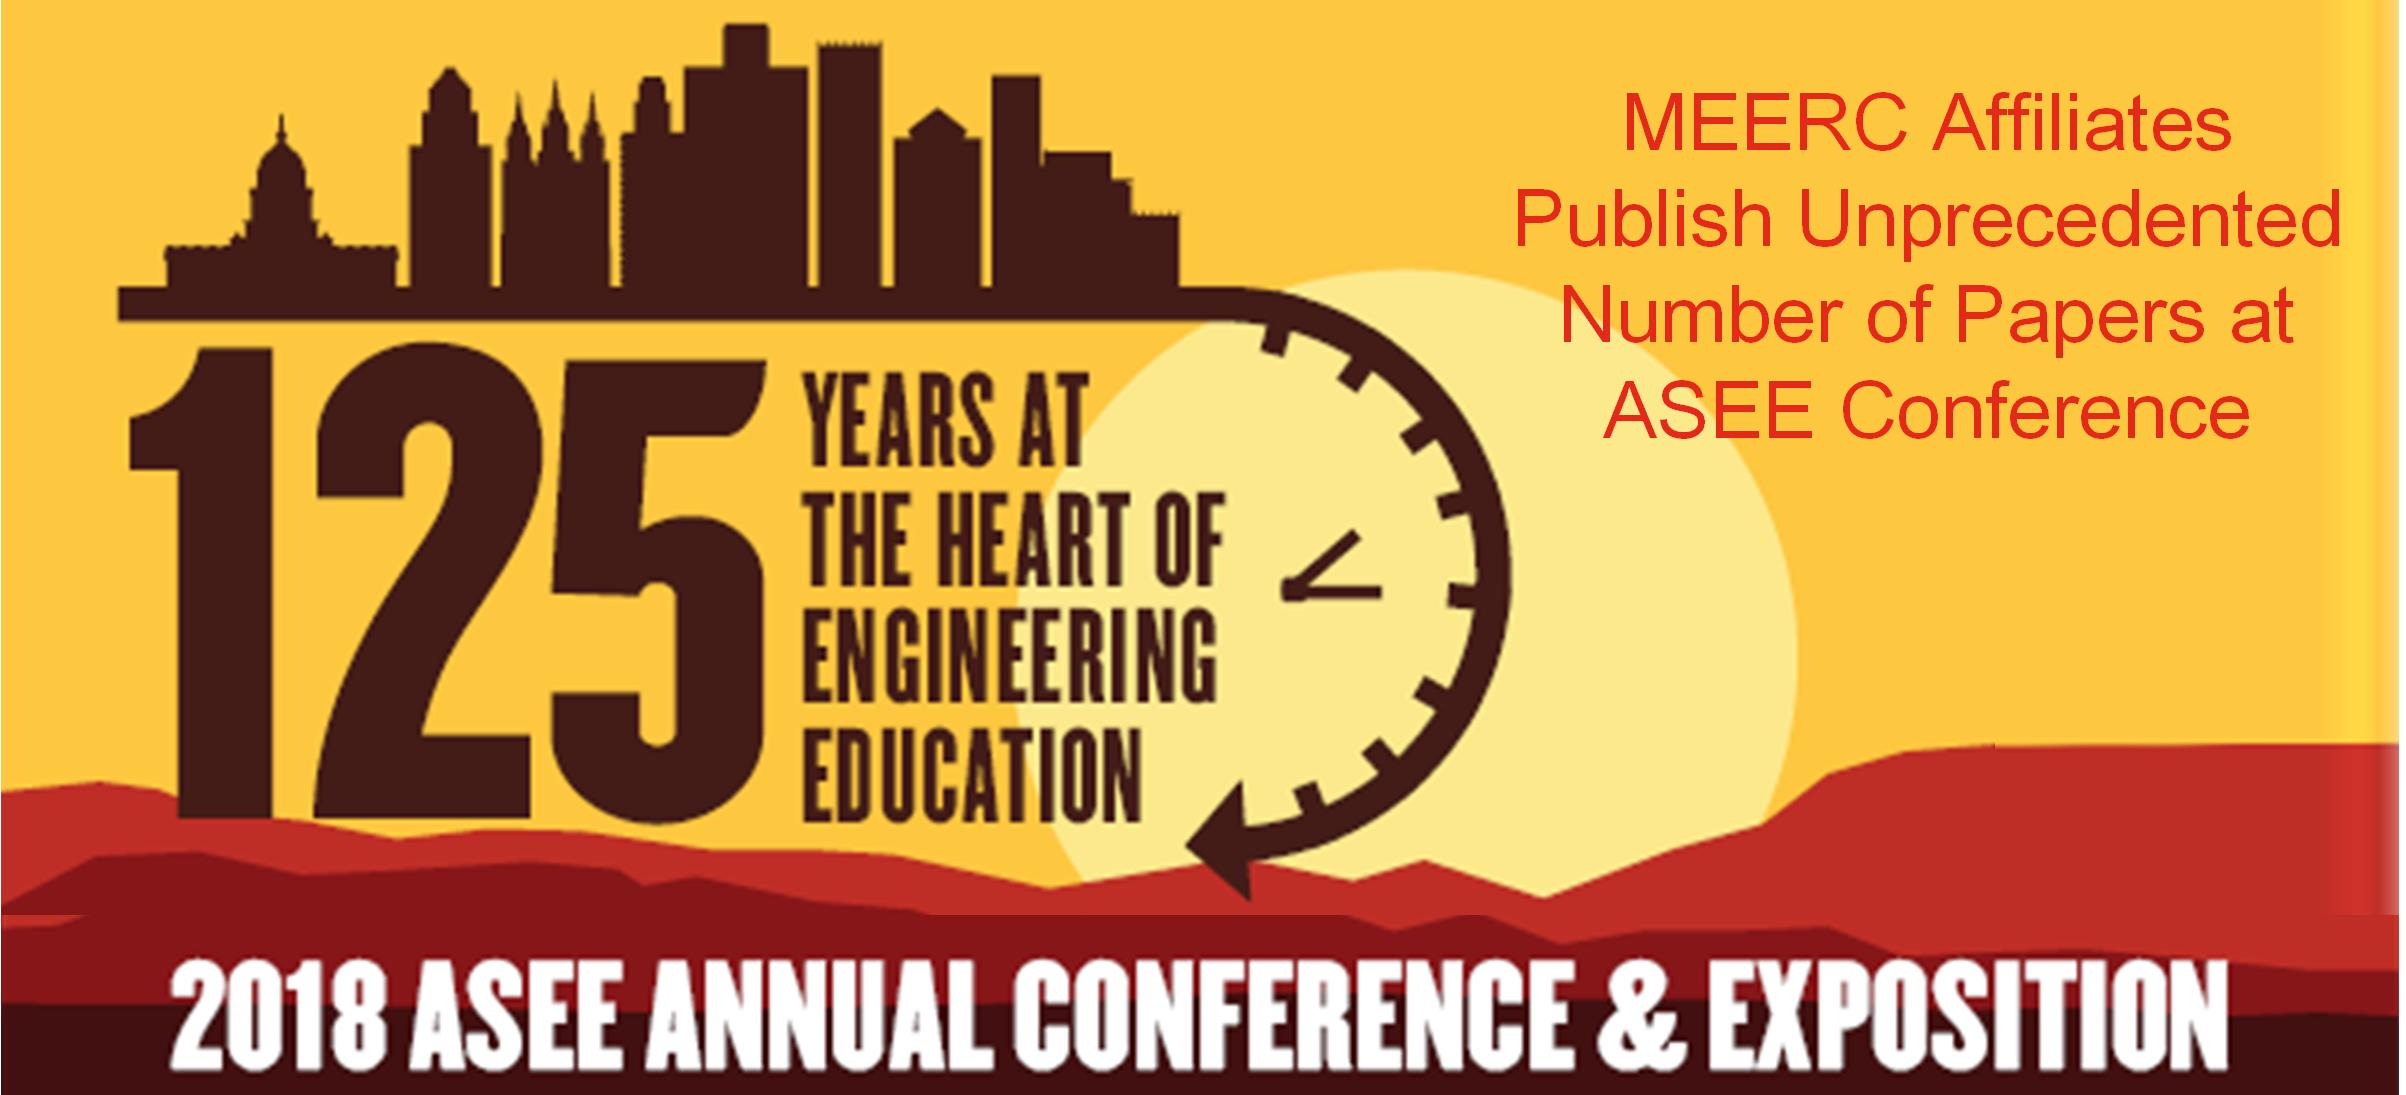 MEERC at ASEE 2018